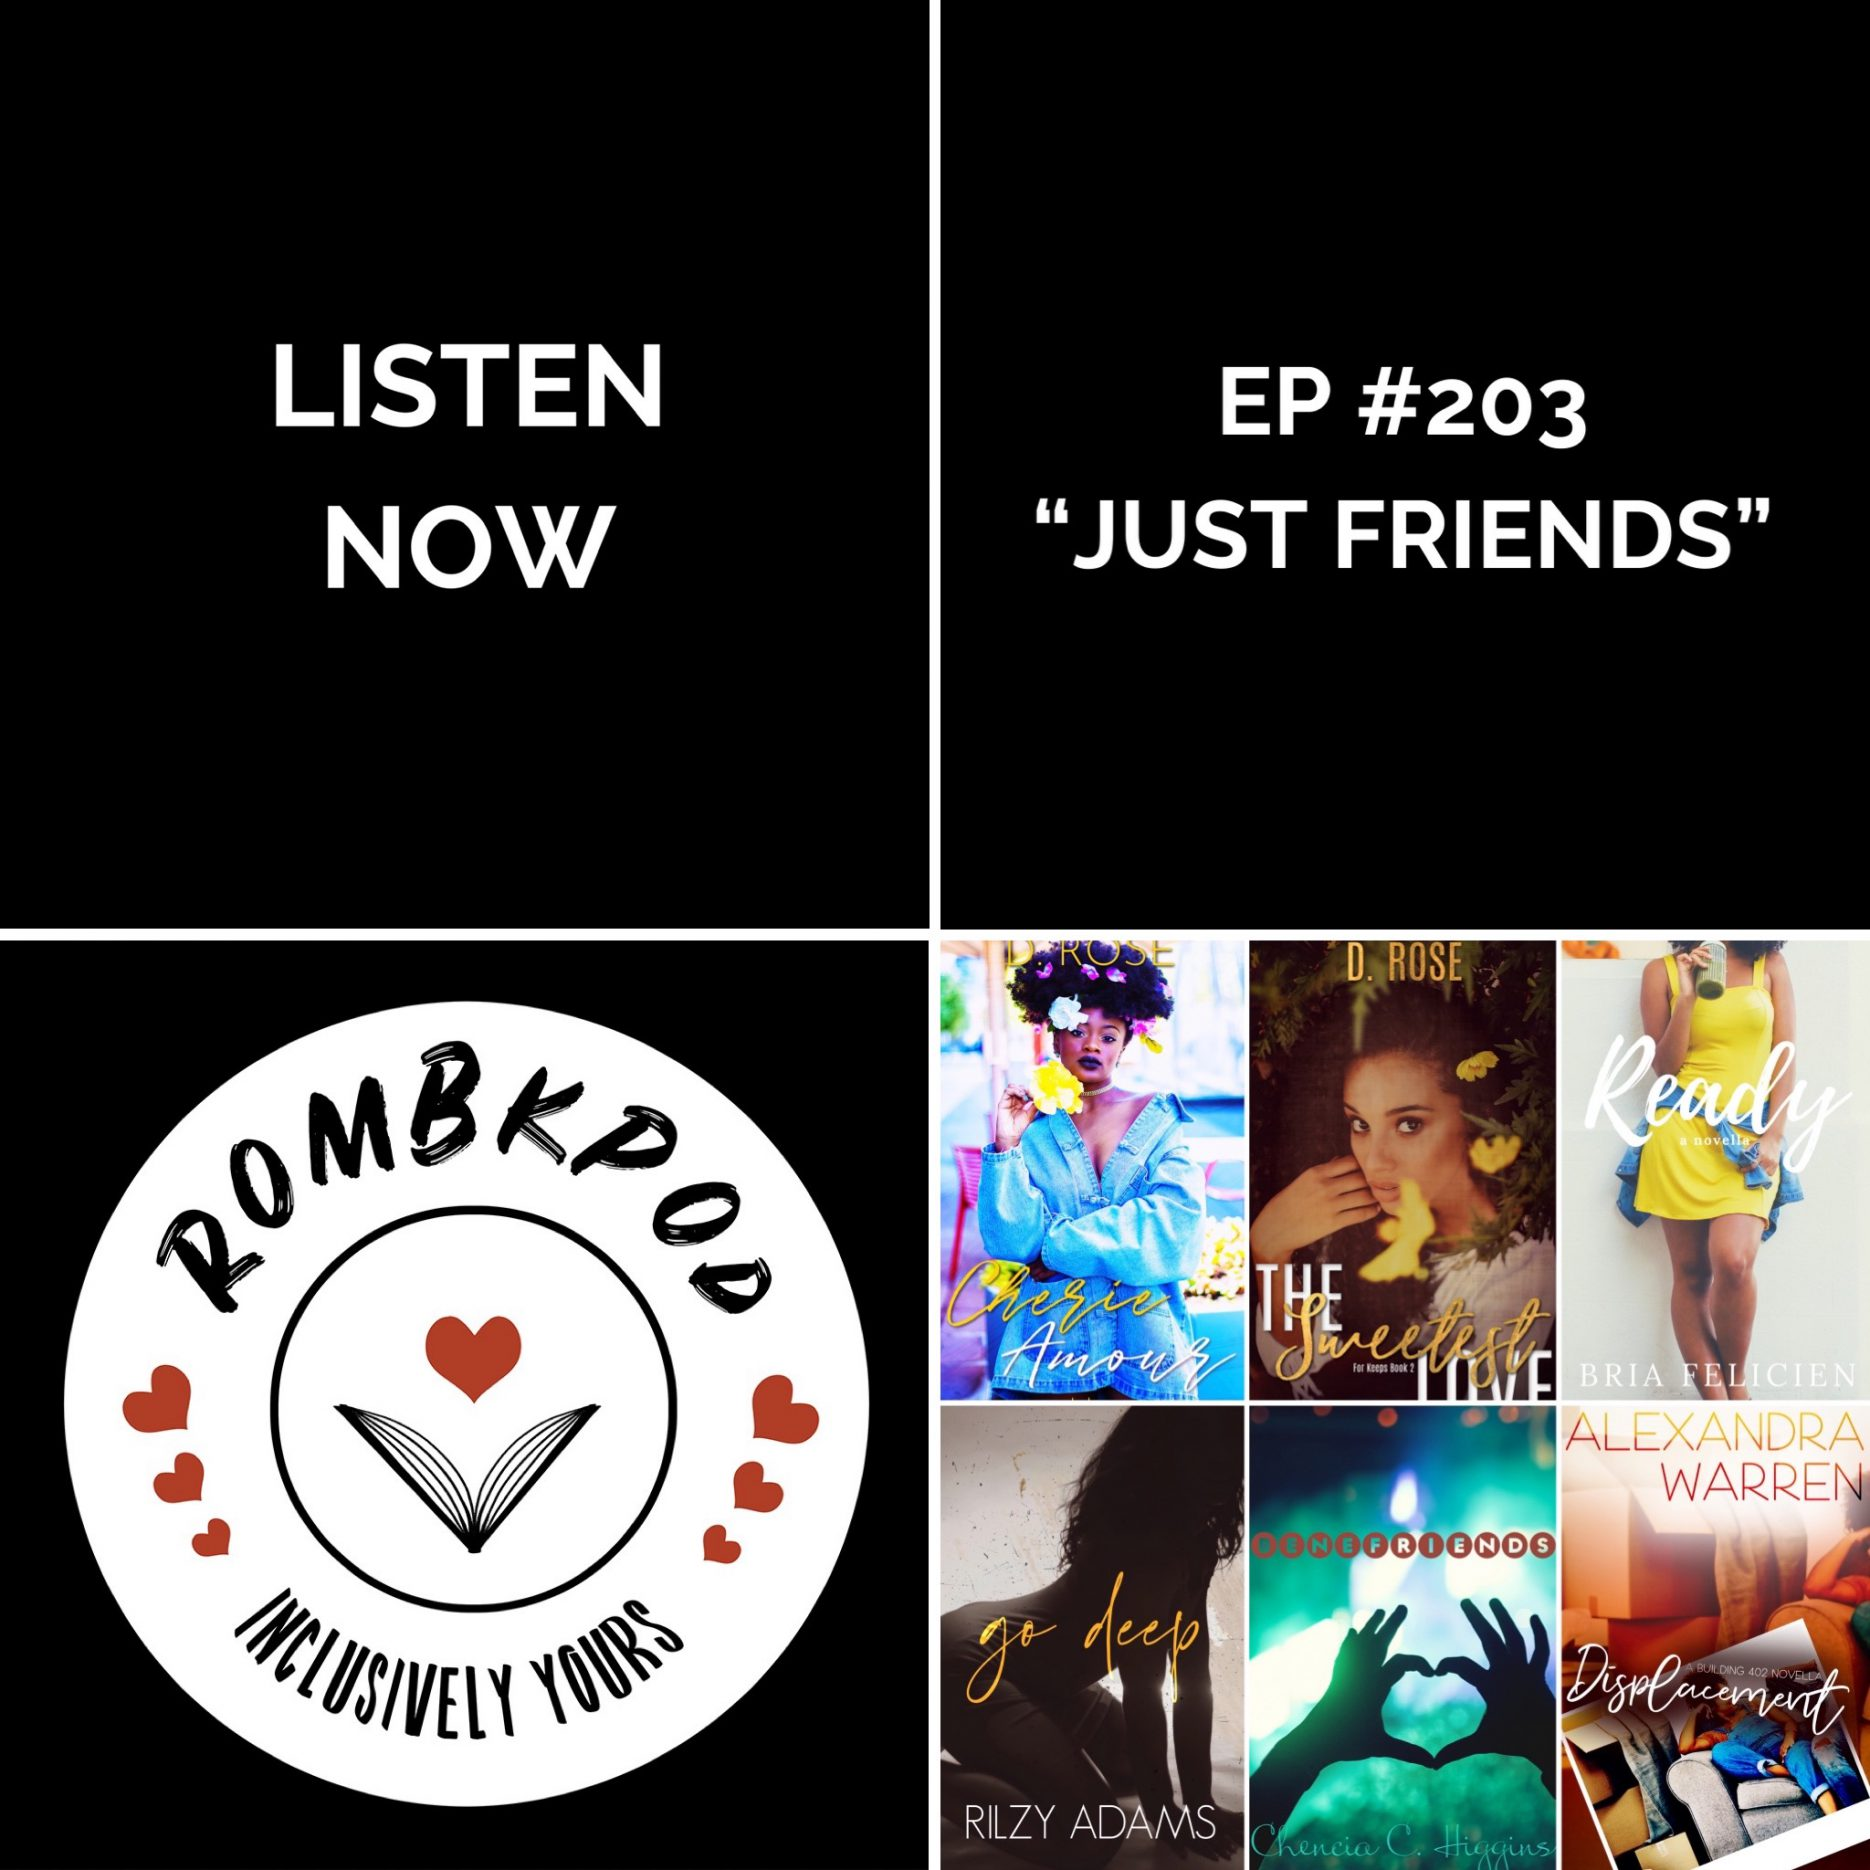 "IMAGE: lower left corner, RomBkPod heart logo; lower right corner, ep #203 cover collage; IMAGE TEXT: Listen Now, ep #203 ""Just Friends"""